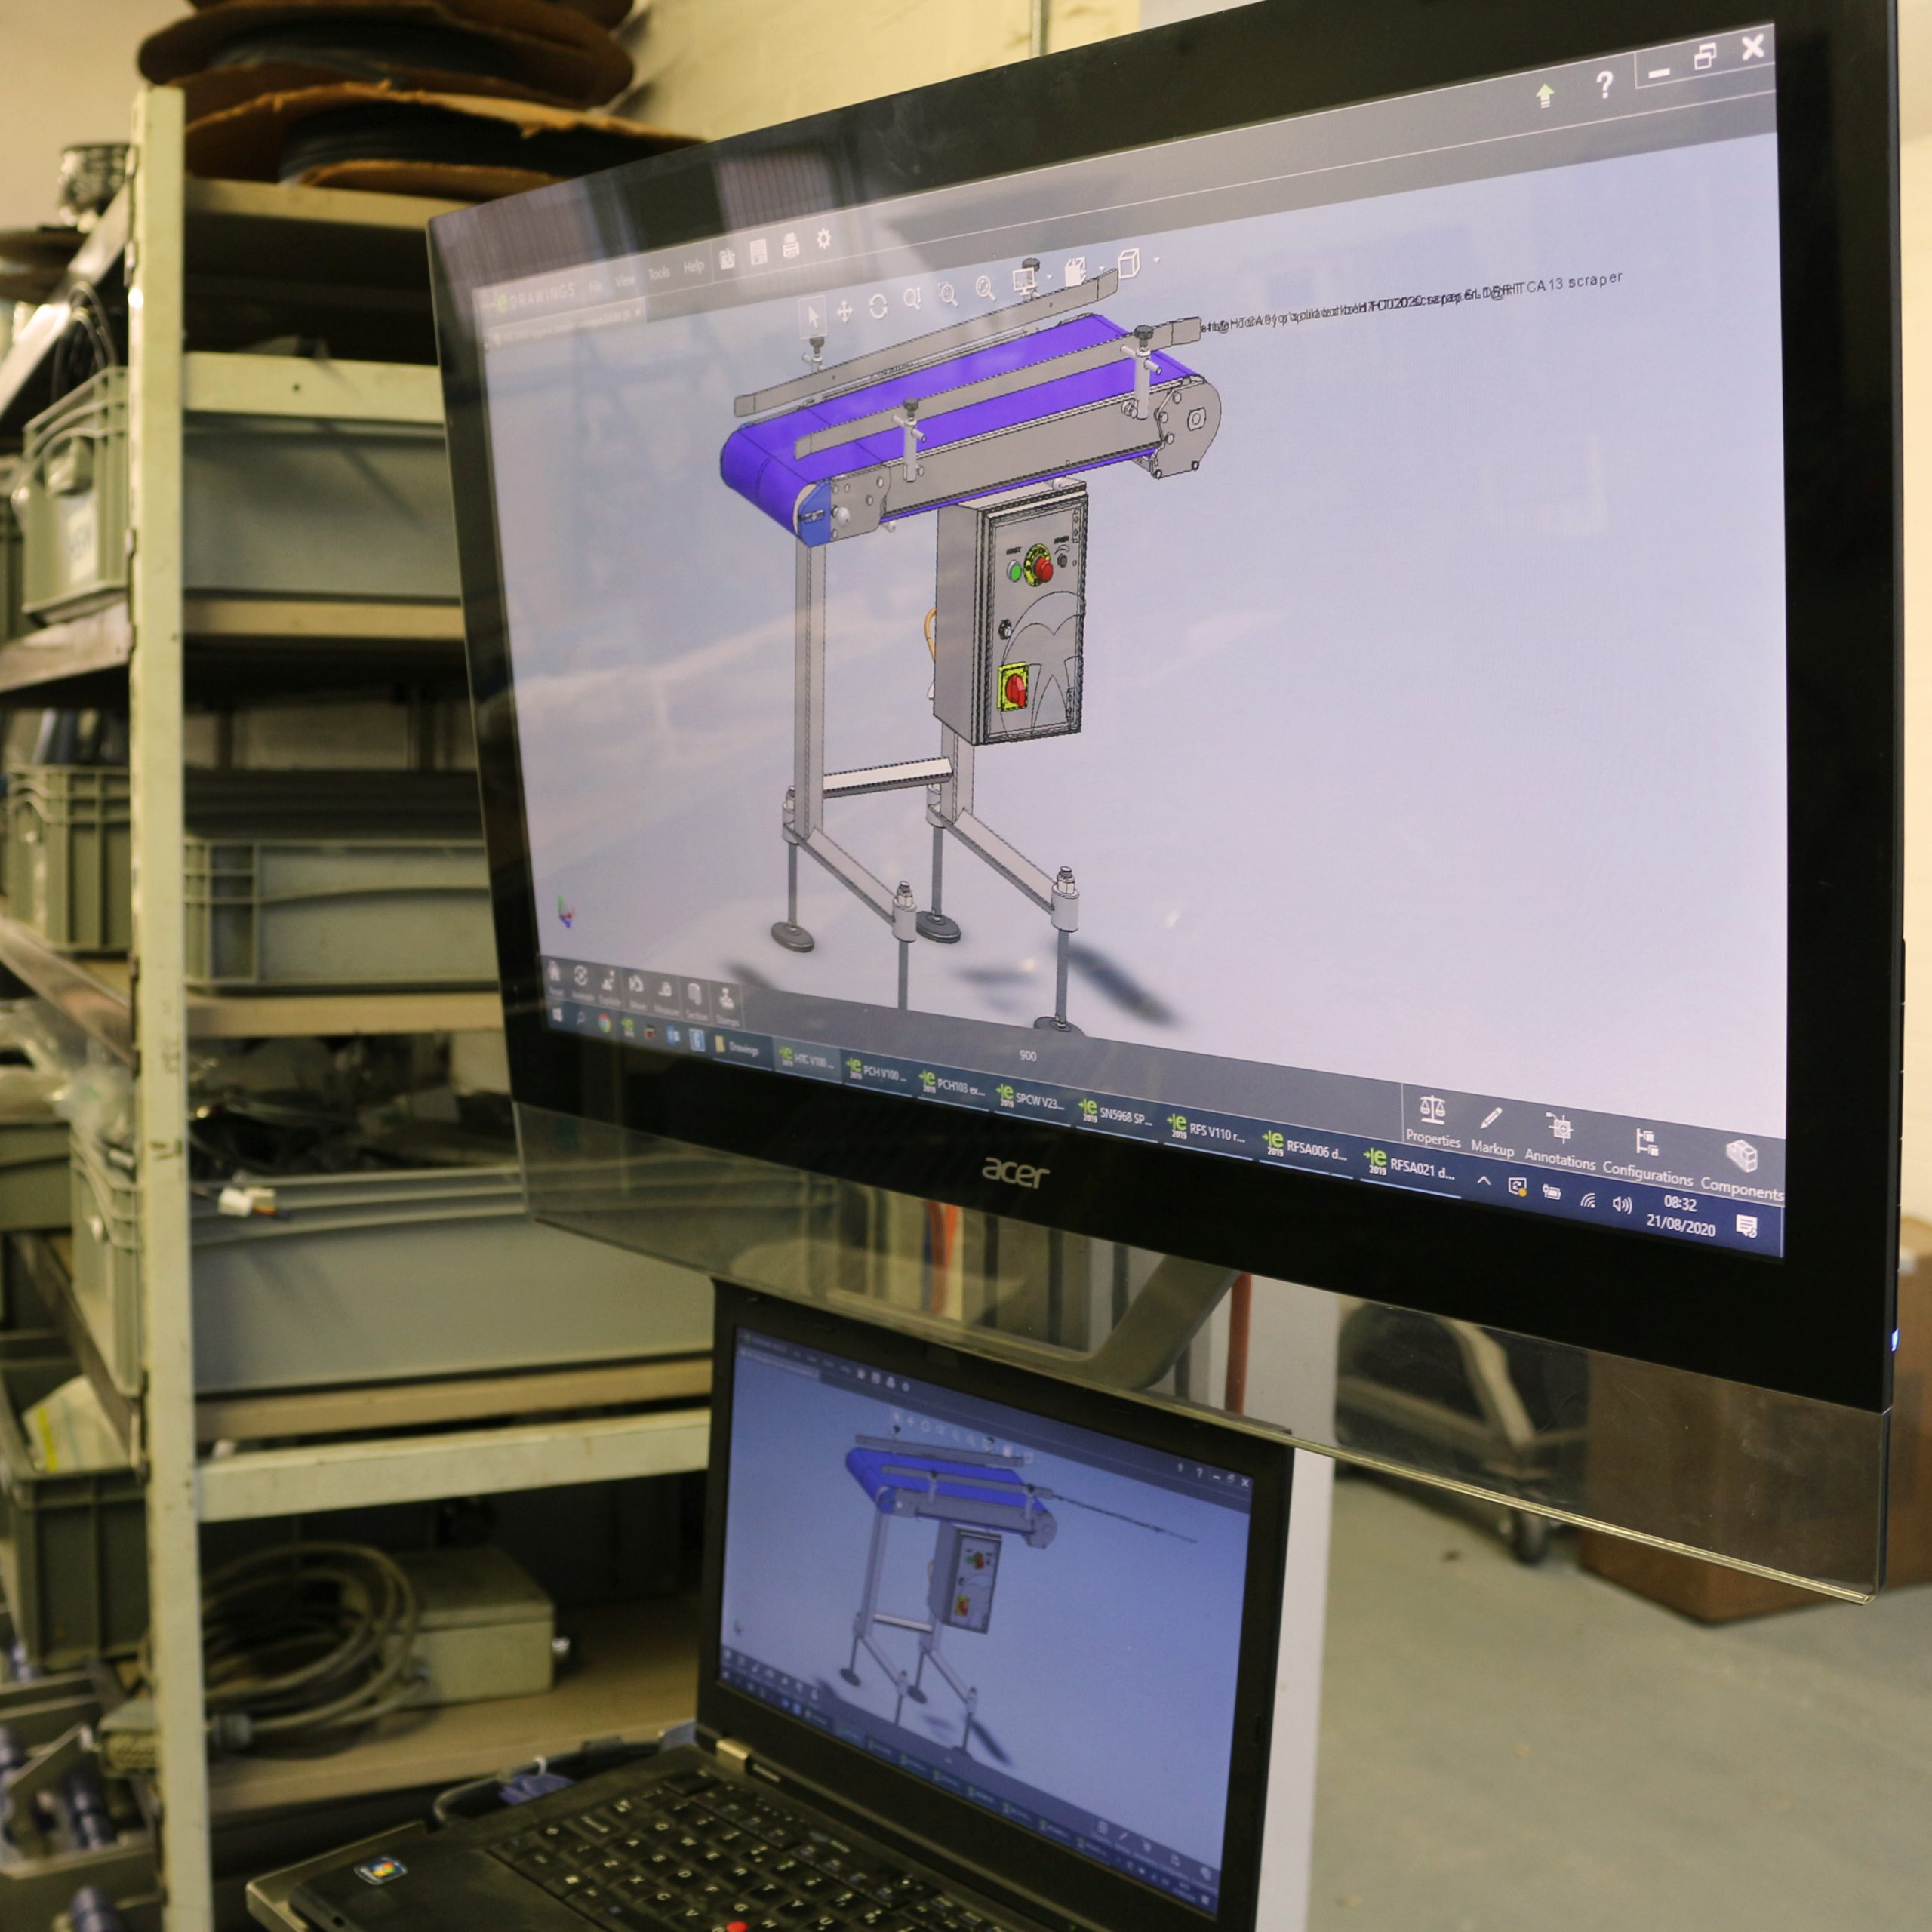 touchscreen showing machine model for assembly